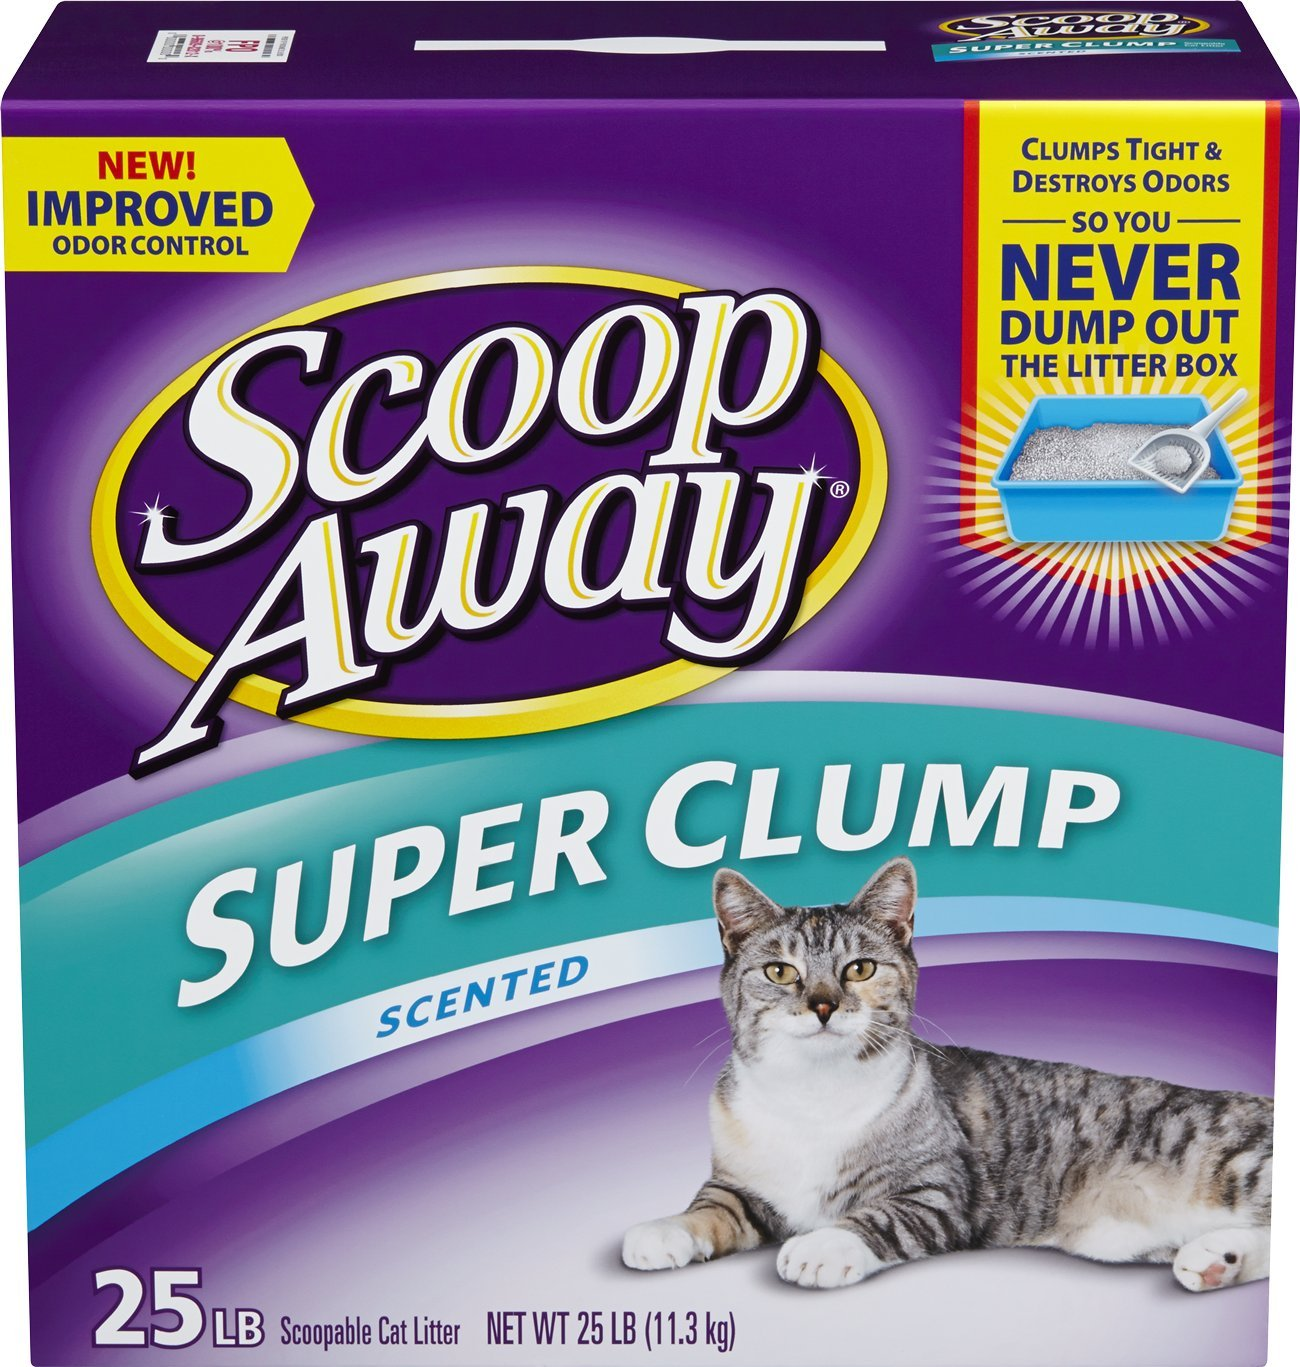 amazoncom scoop away super clump with ammonia shield scented cat litter 25 pound carton scoop away cat litter pet supplies - Cat Litter Reviews